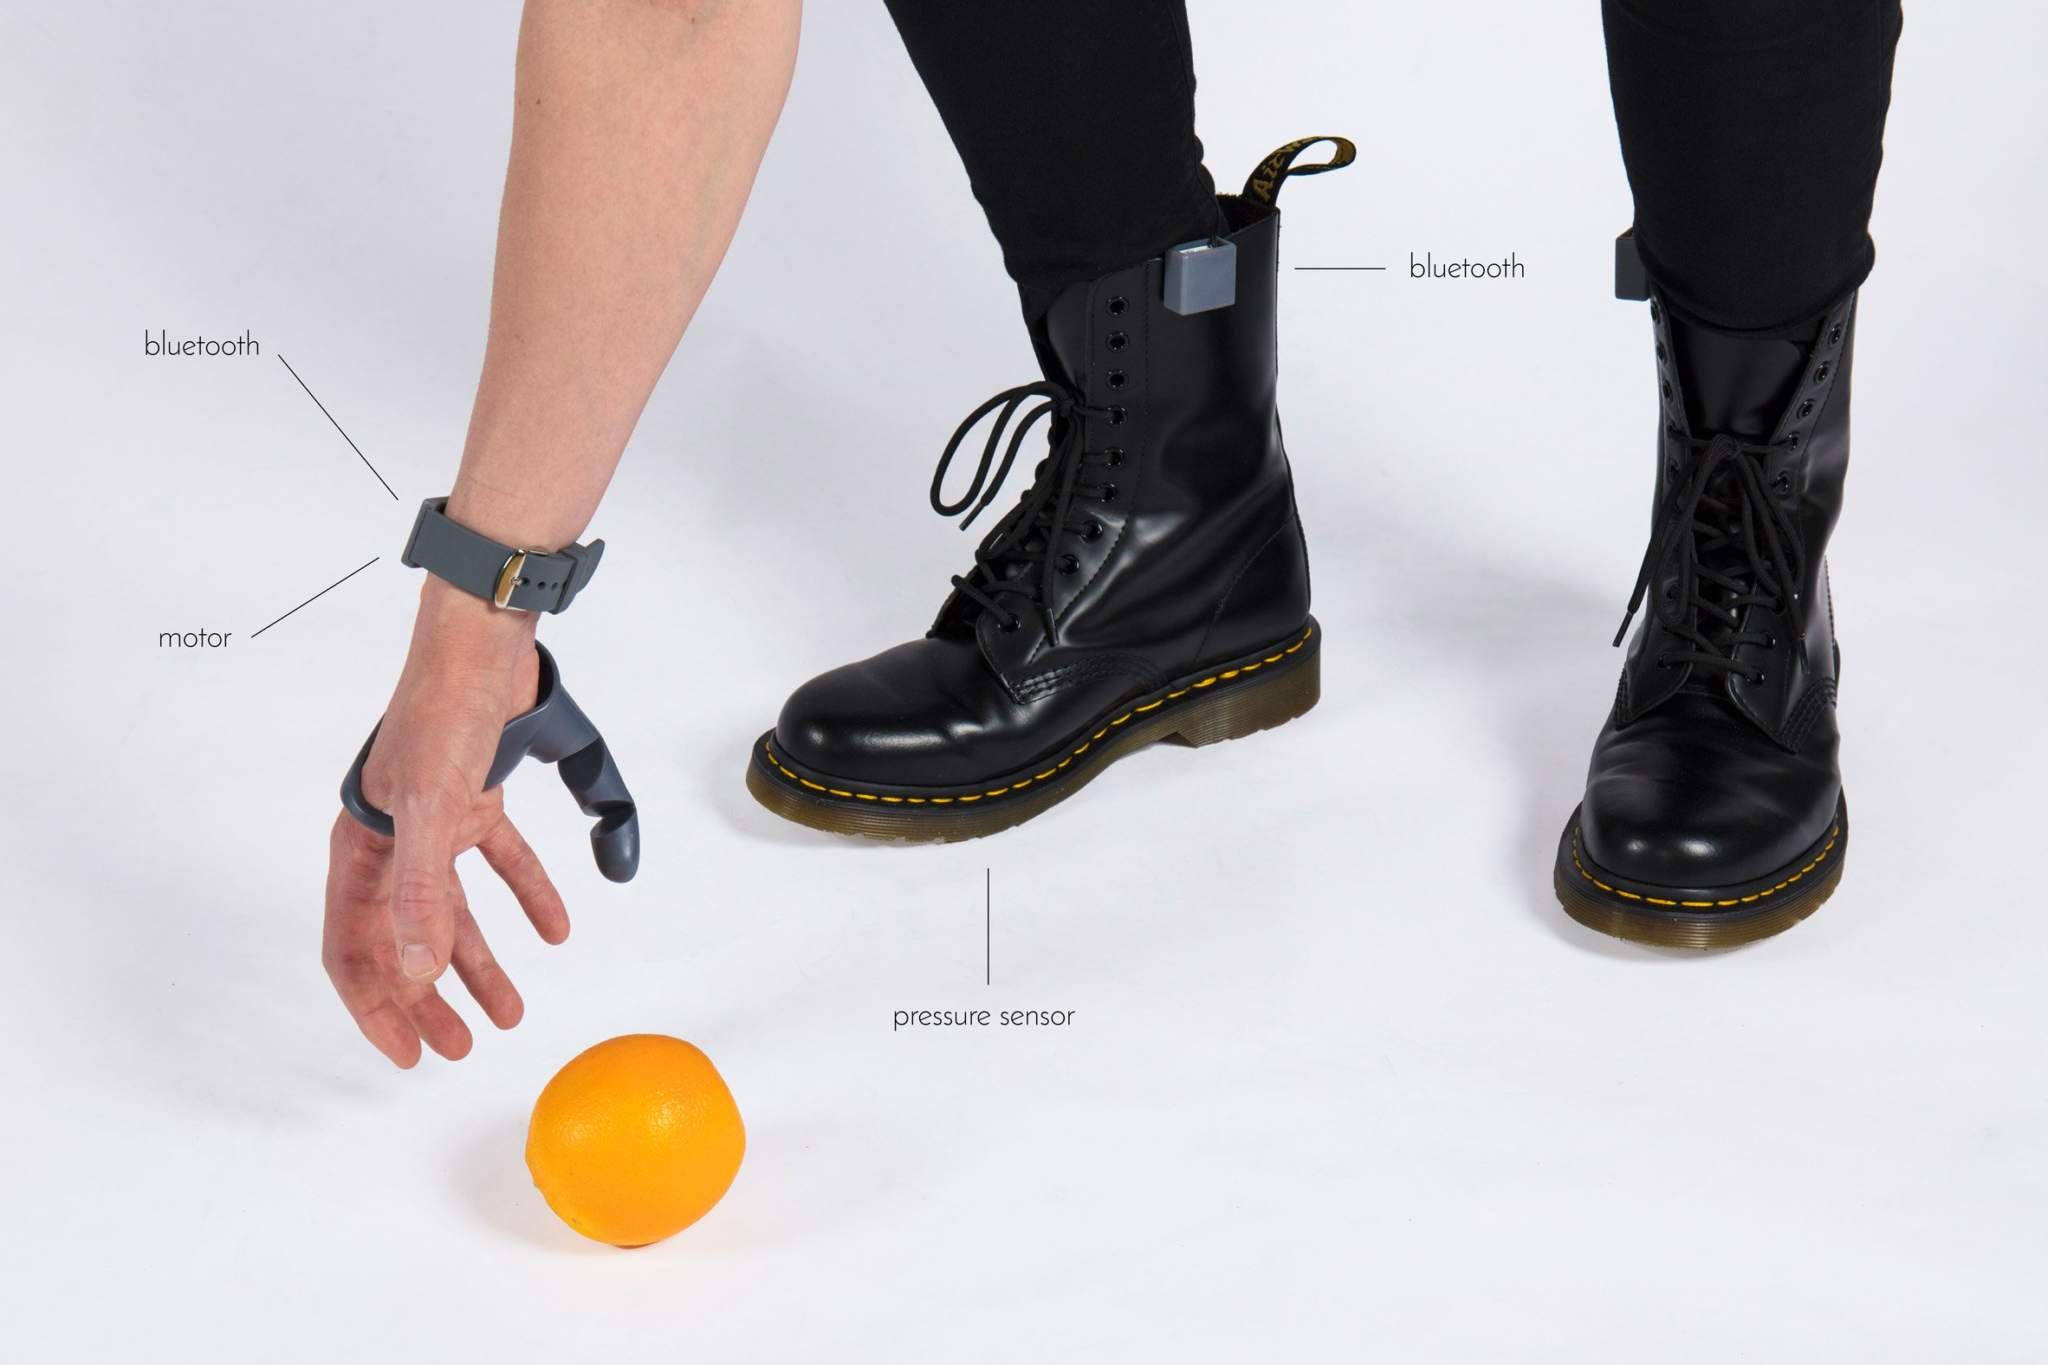 The Third Thumb is connected to pressure sensors to control its movement. Image via Dani Clode.